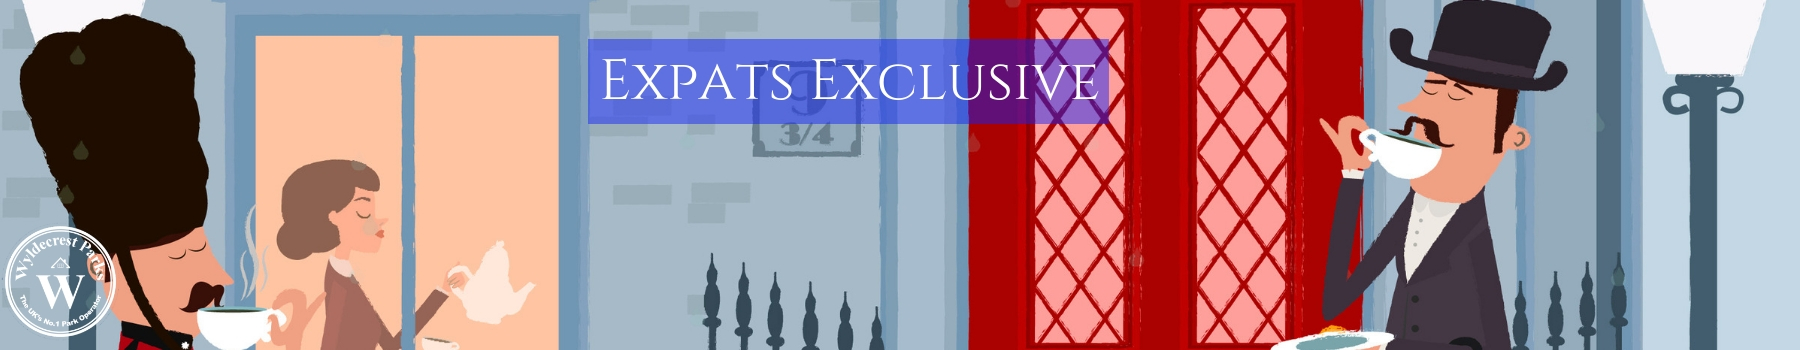 Expats Exclusive Carousel Banner